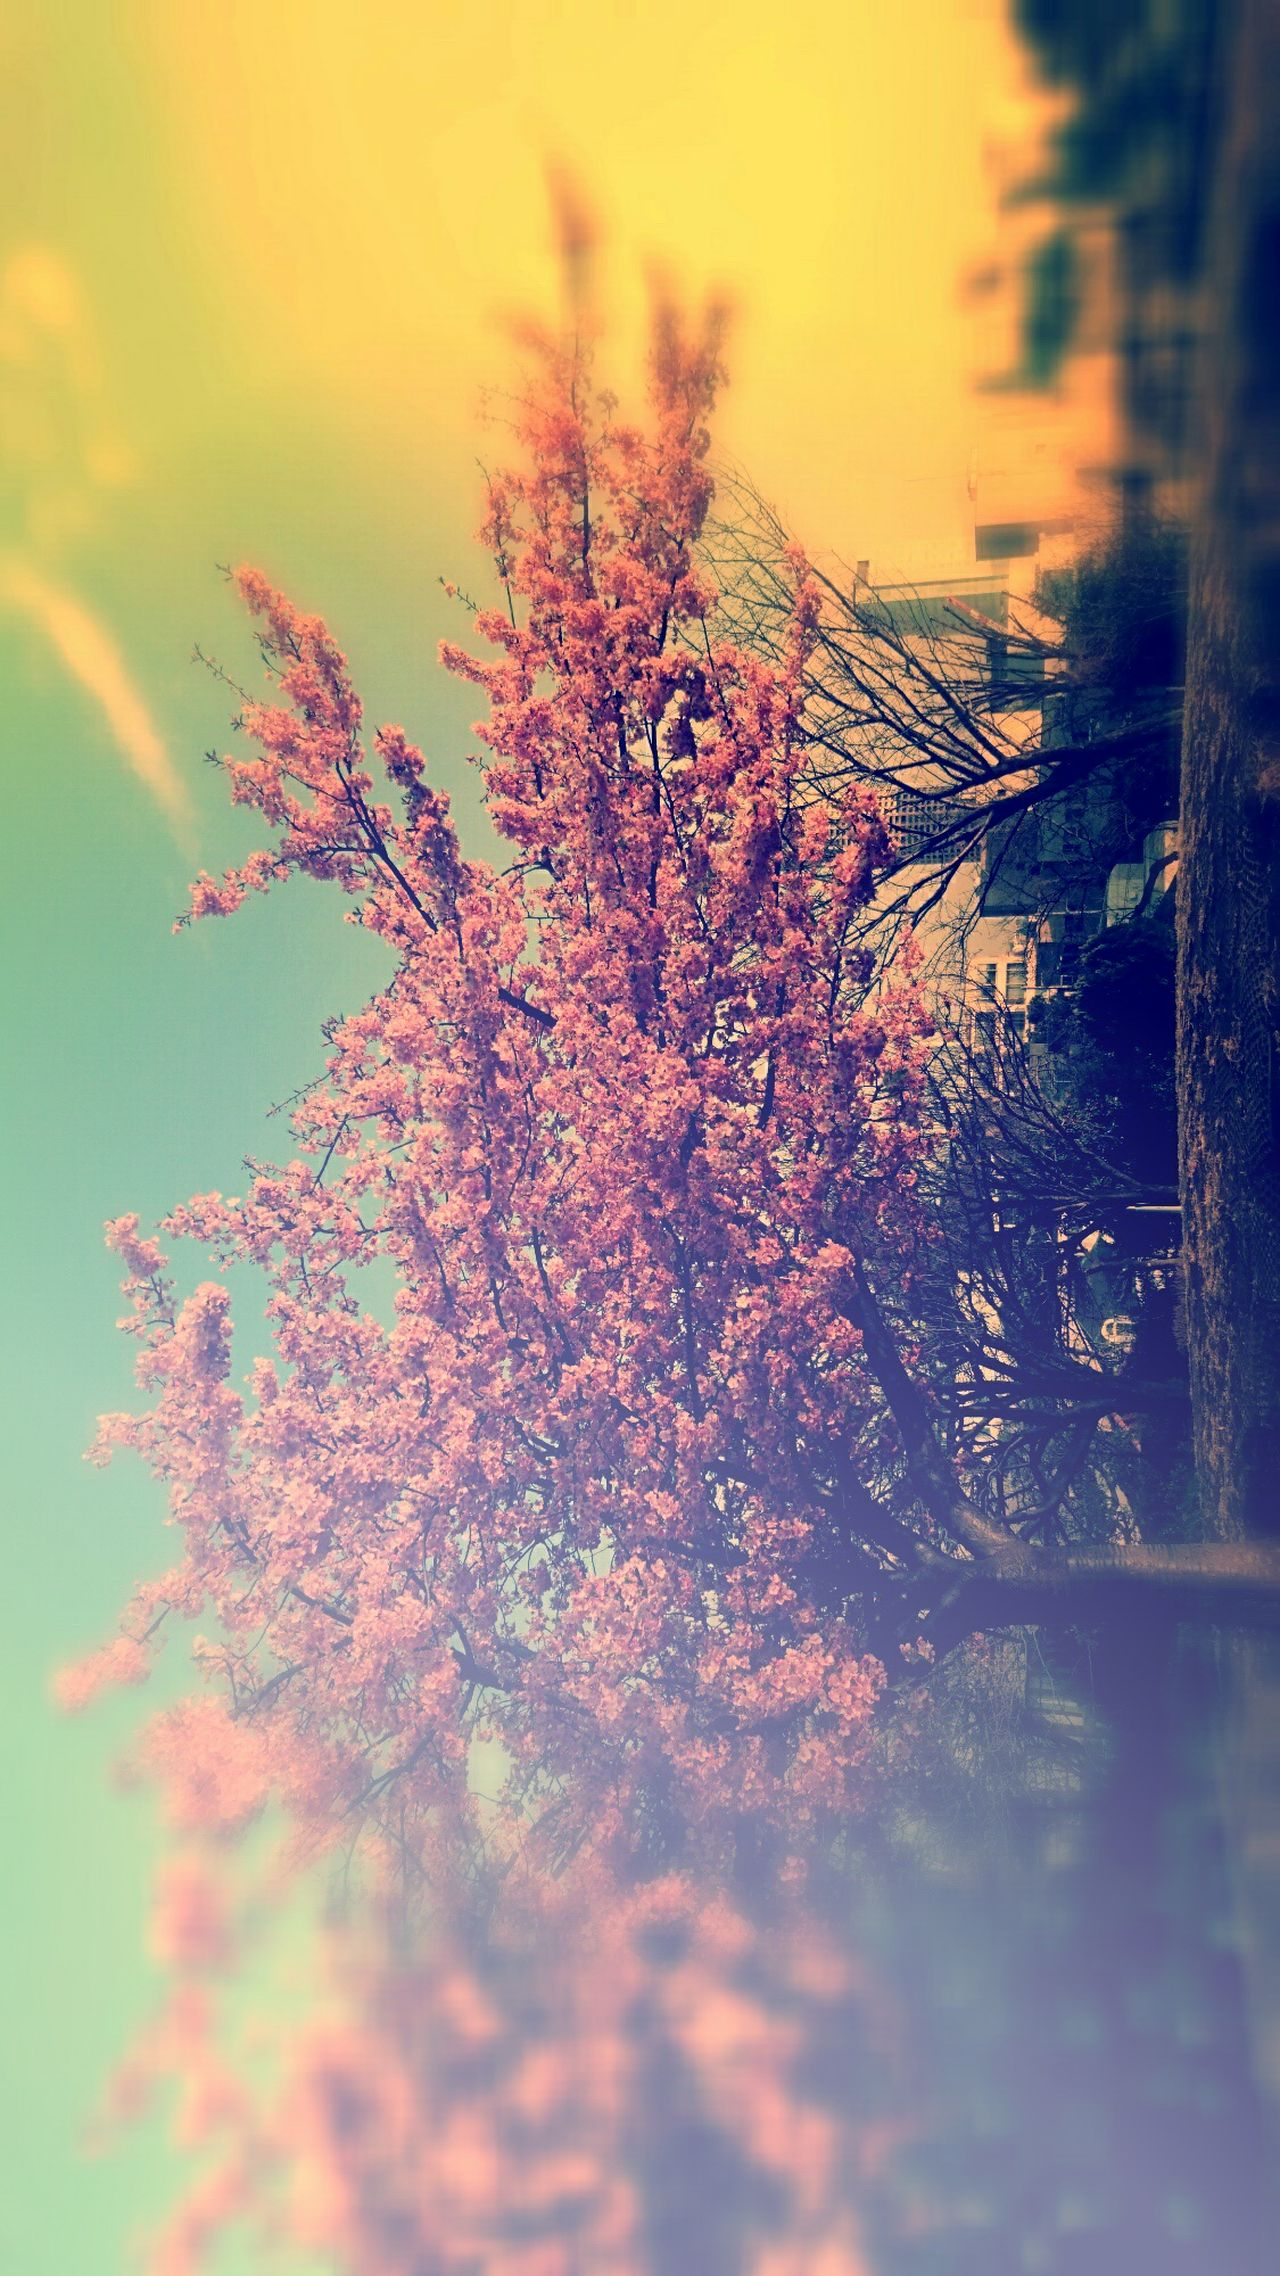 Hello World Spring Urban Spring Fever Quantity Cherry Blossoms Park Nature Photography Flower Flowers Flowerporn Pink Flower Pink Color Palette Skyporn Sky And Clouds Sky And Trees Buildings & Sky Nature's Diversities Maximum Closeness Tokyo Street Photography Tokyo Japan Showcase March